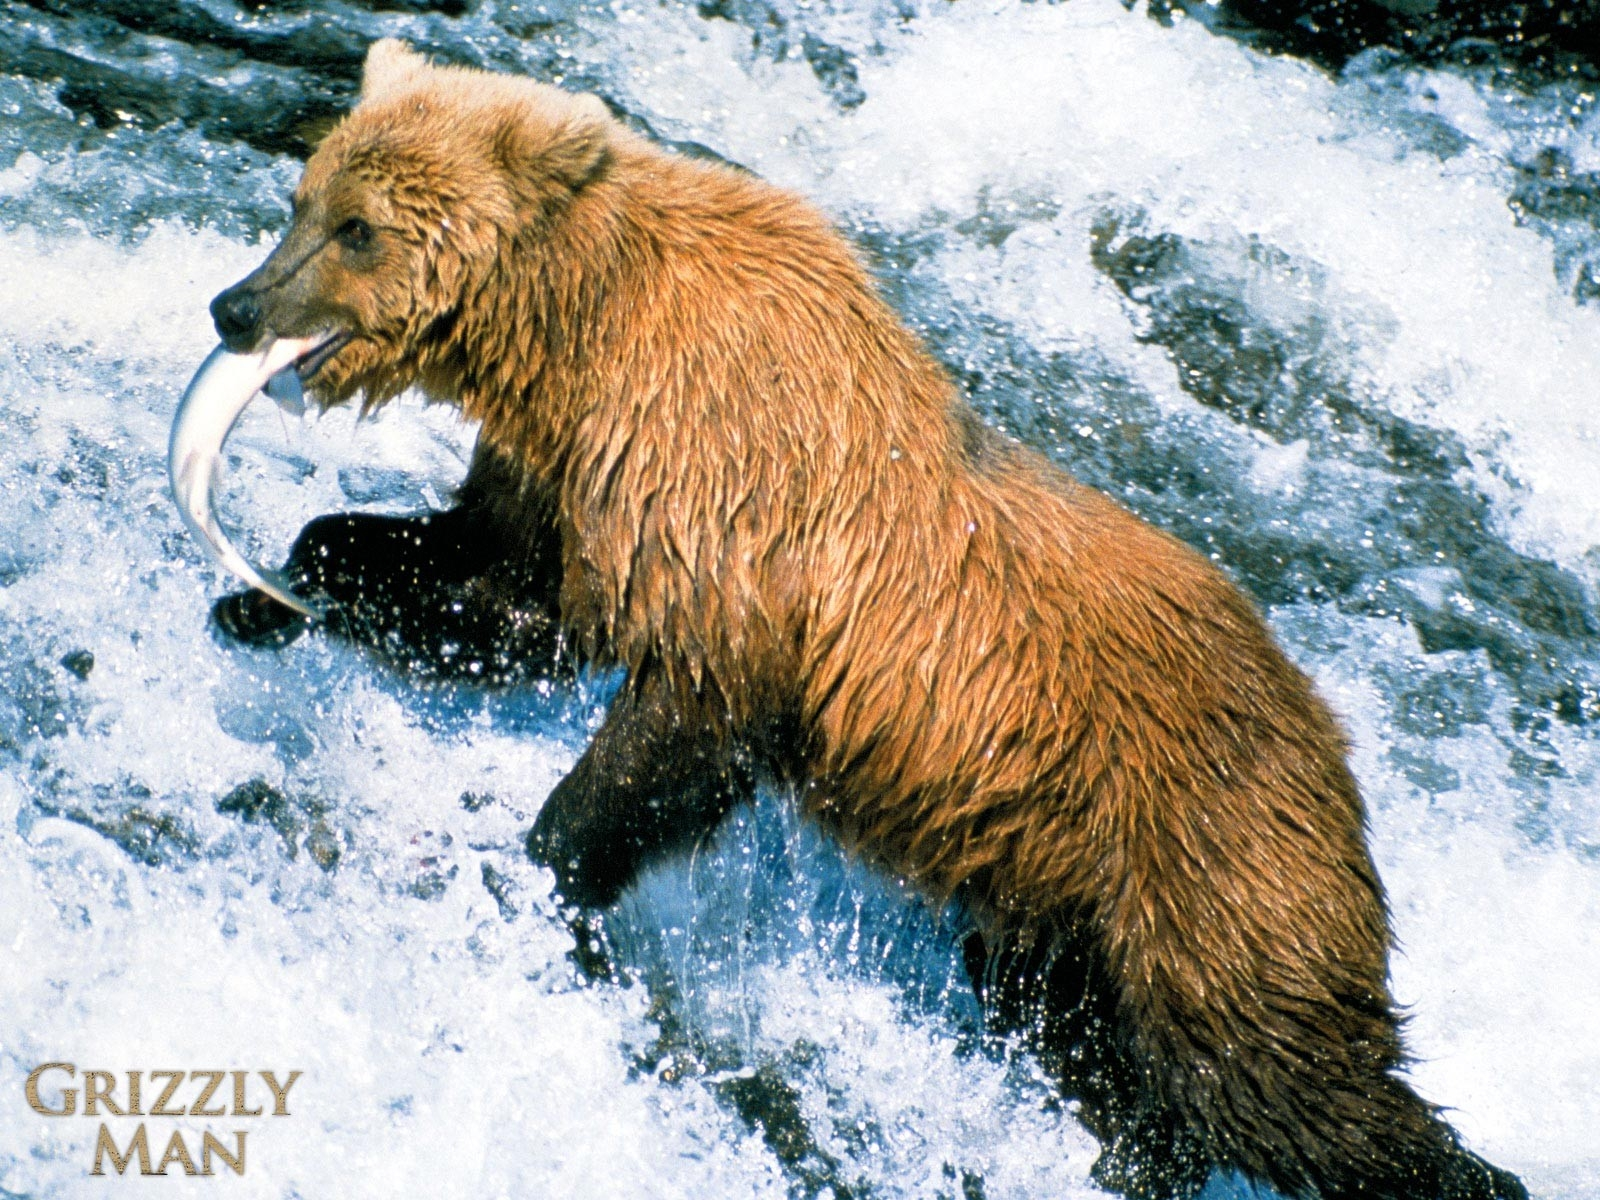 Un wallpaper del film Grizzly Man